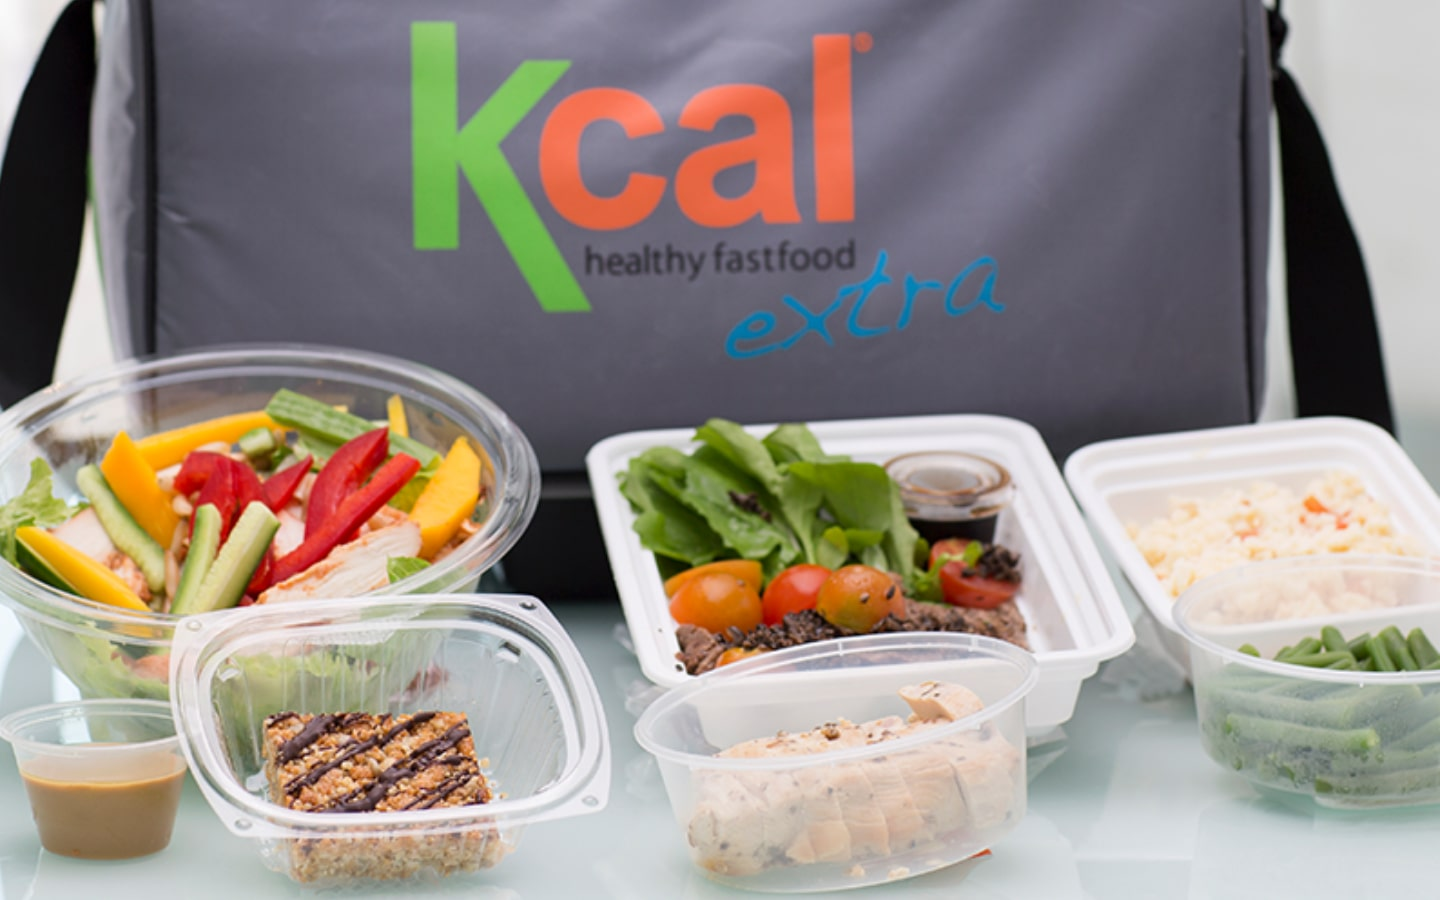 Best Meal Plans in Dubai: Eat Clean, Eat Well, Ketolife